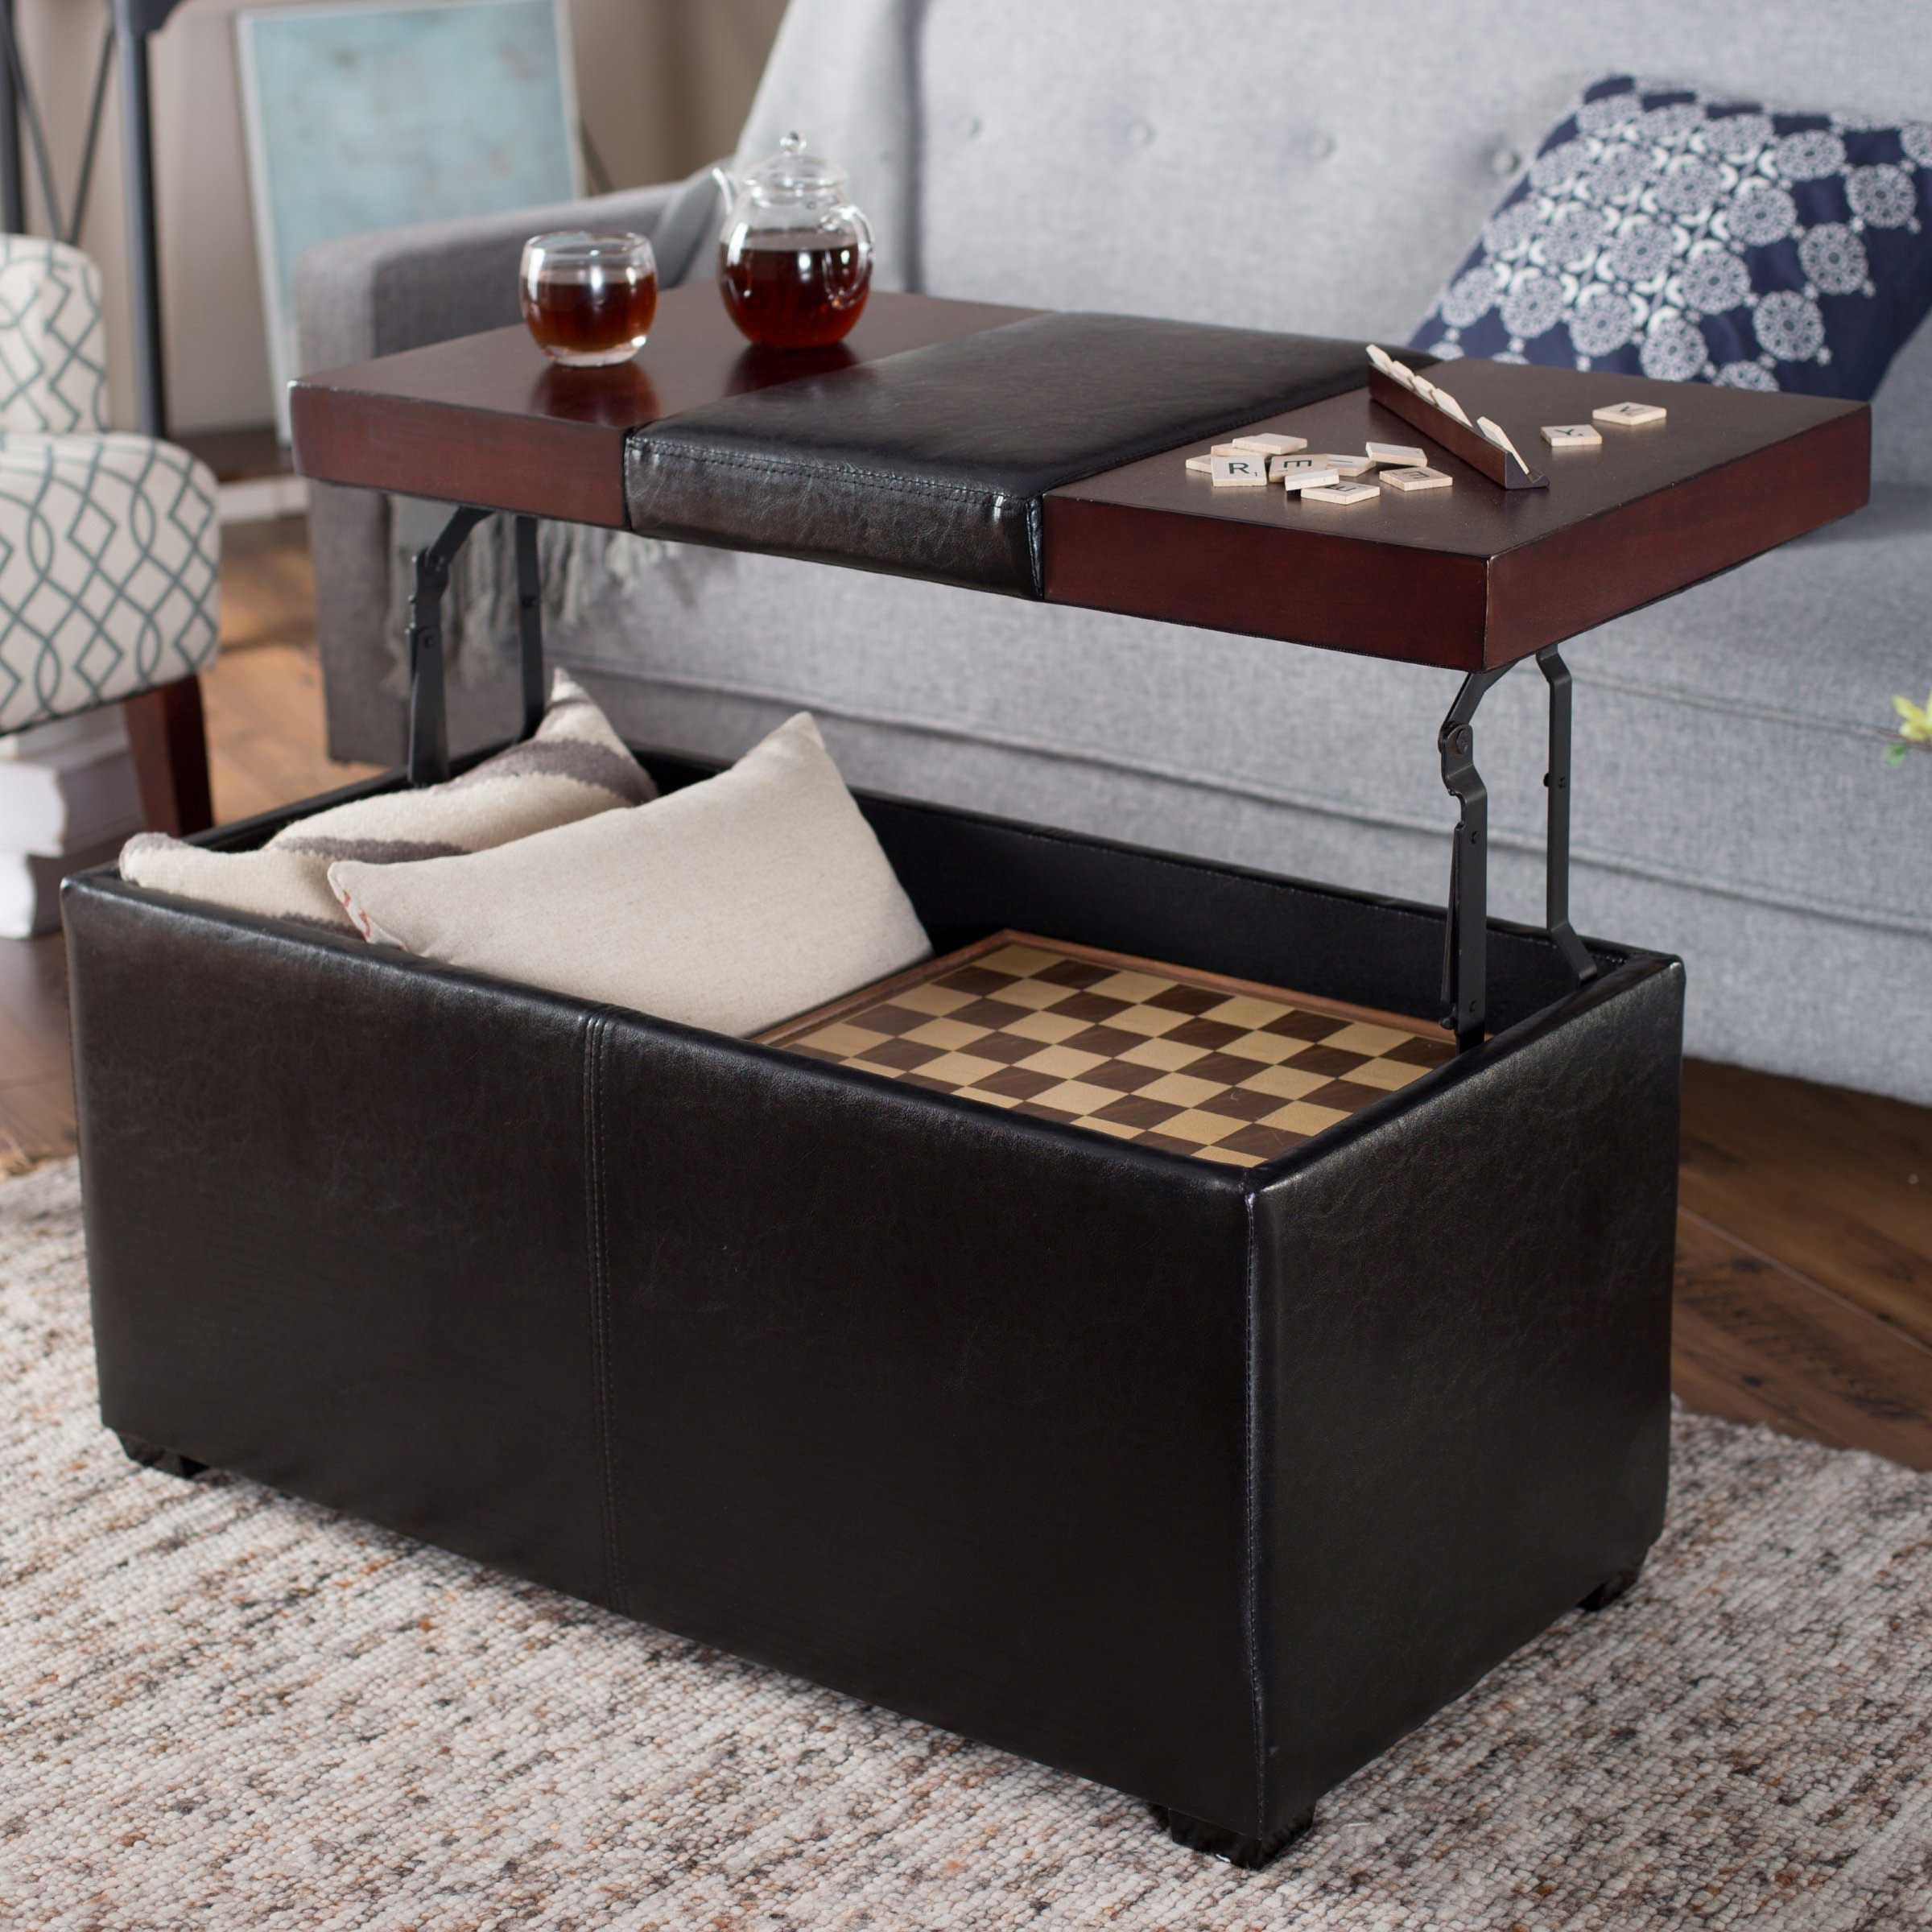 Ottoman Table 5 Piece Convertible From Ginny S Ottoman Table